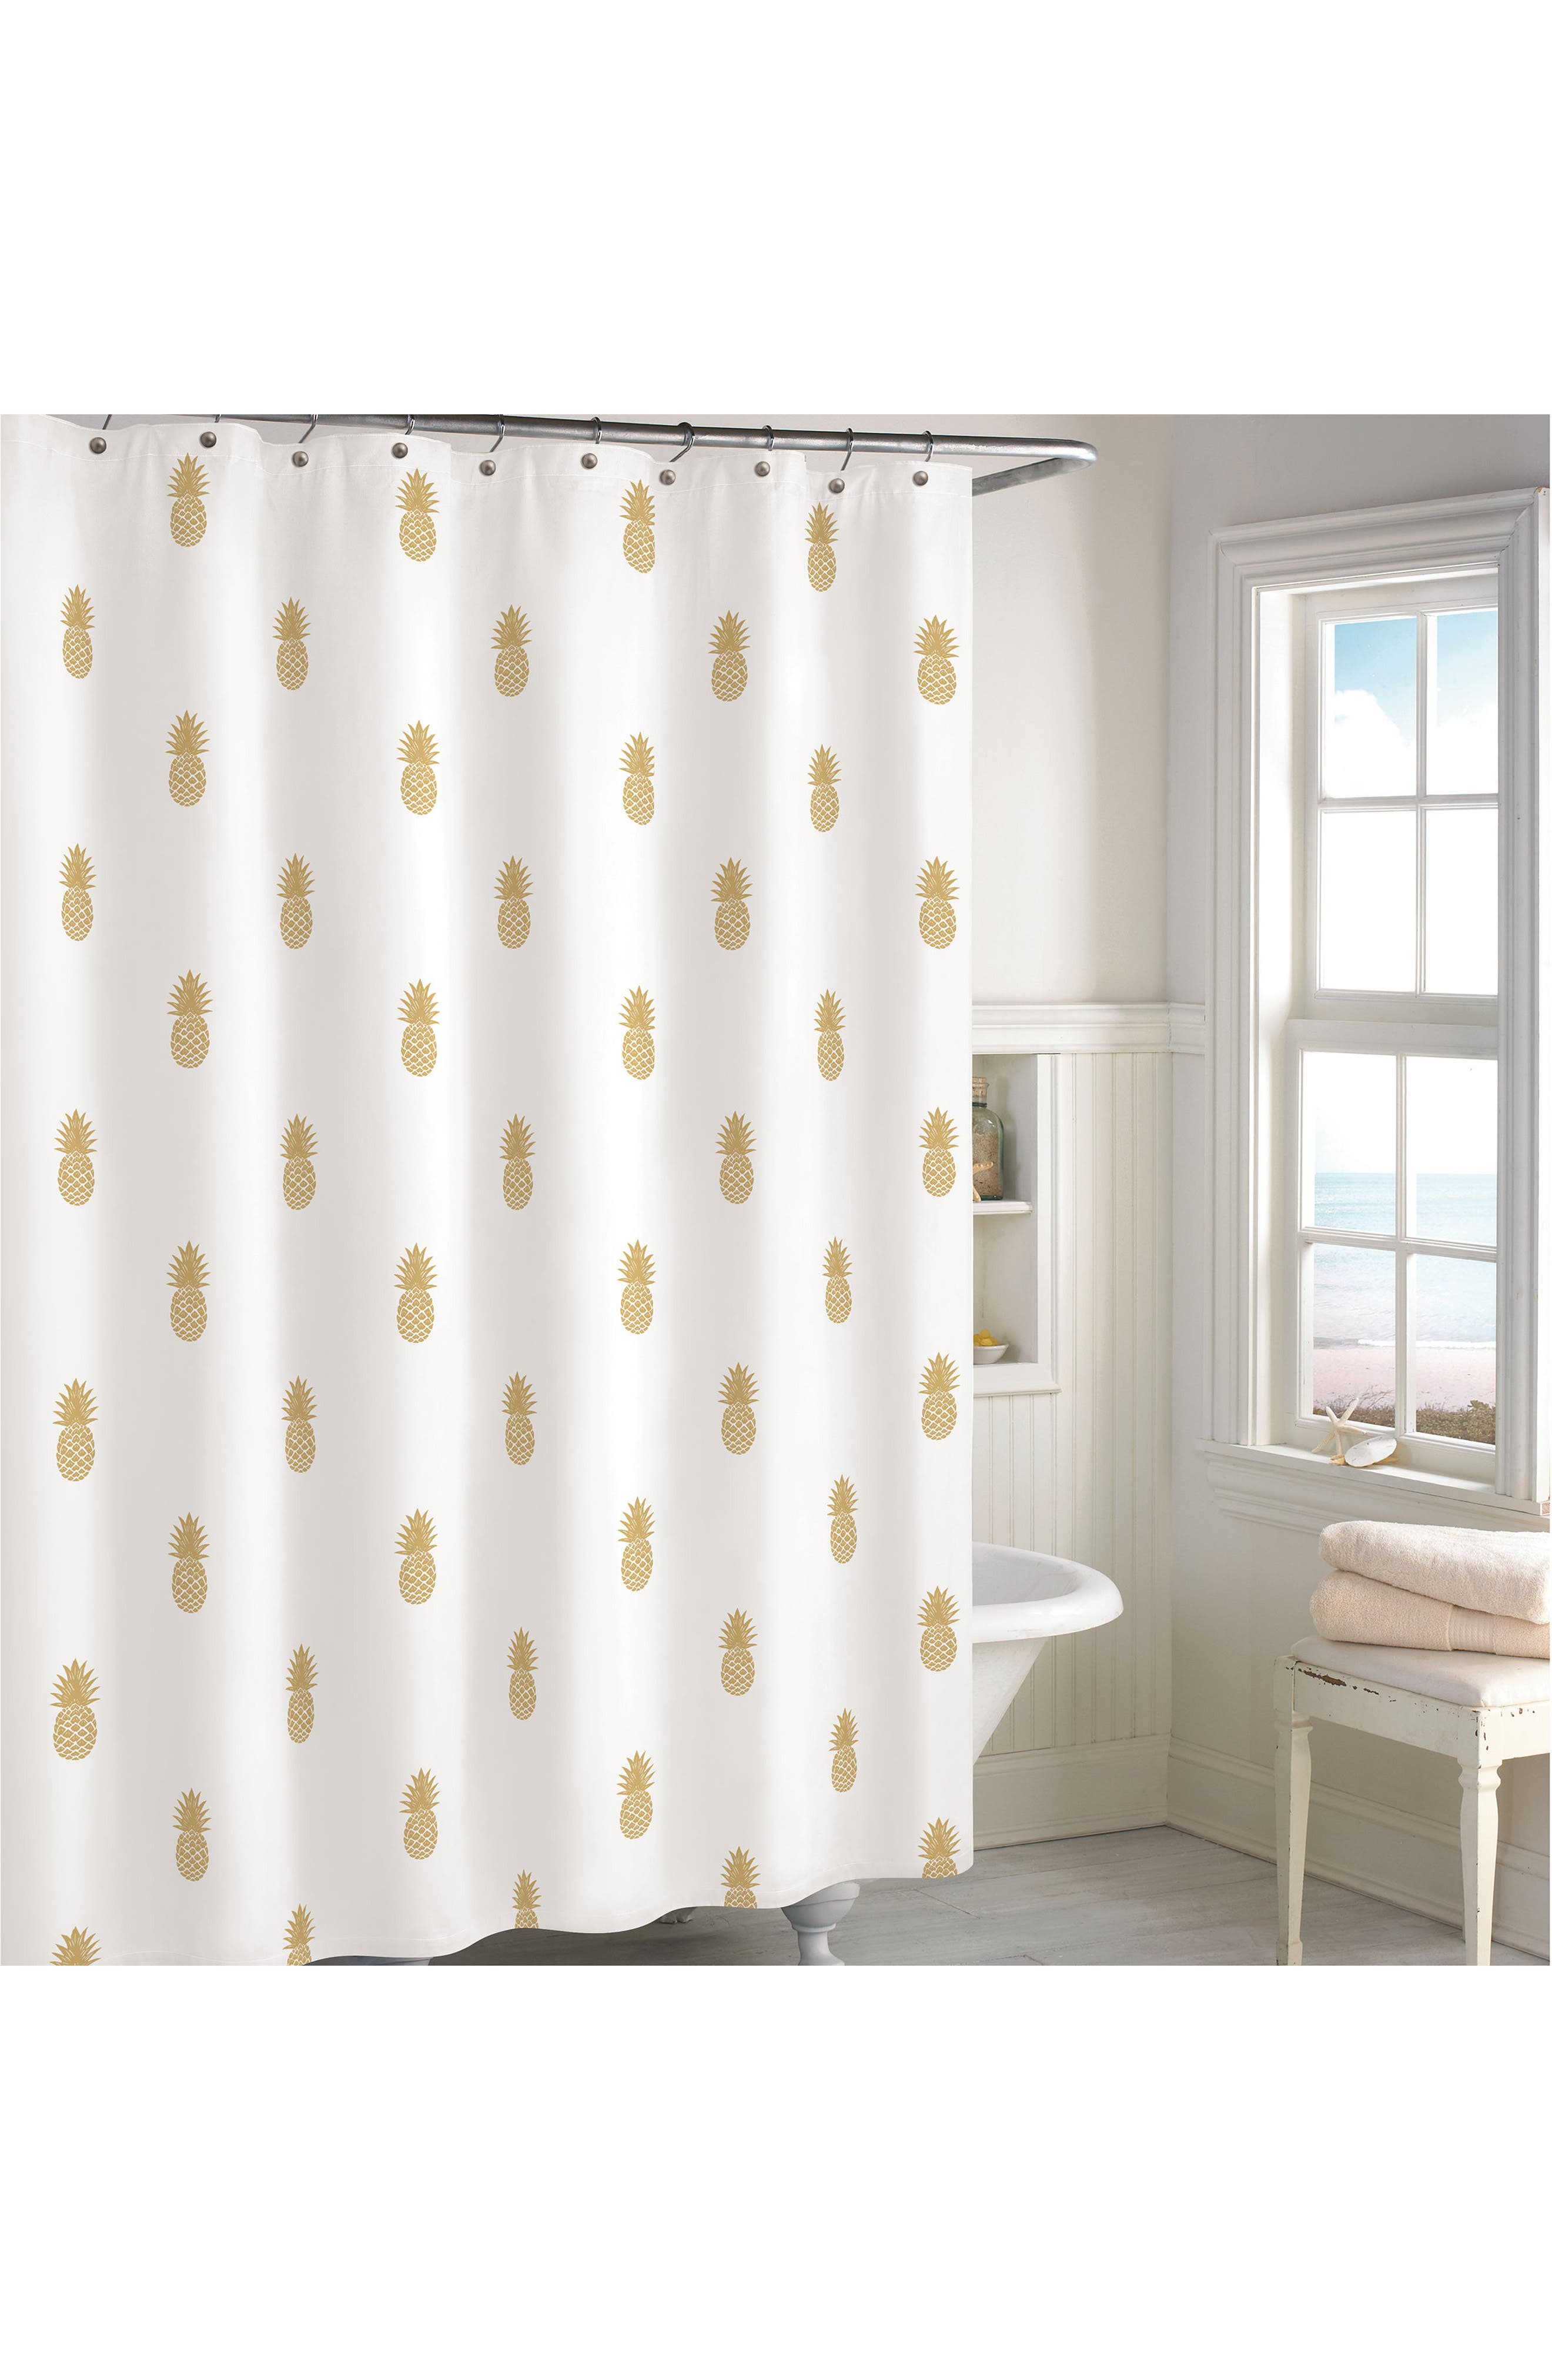 Black and white monogrammed shower curtain - Black And White Monogrammed Shower Curtain 41